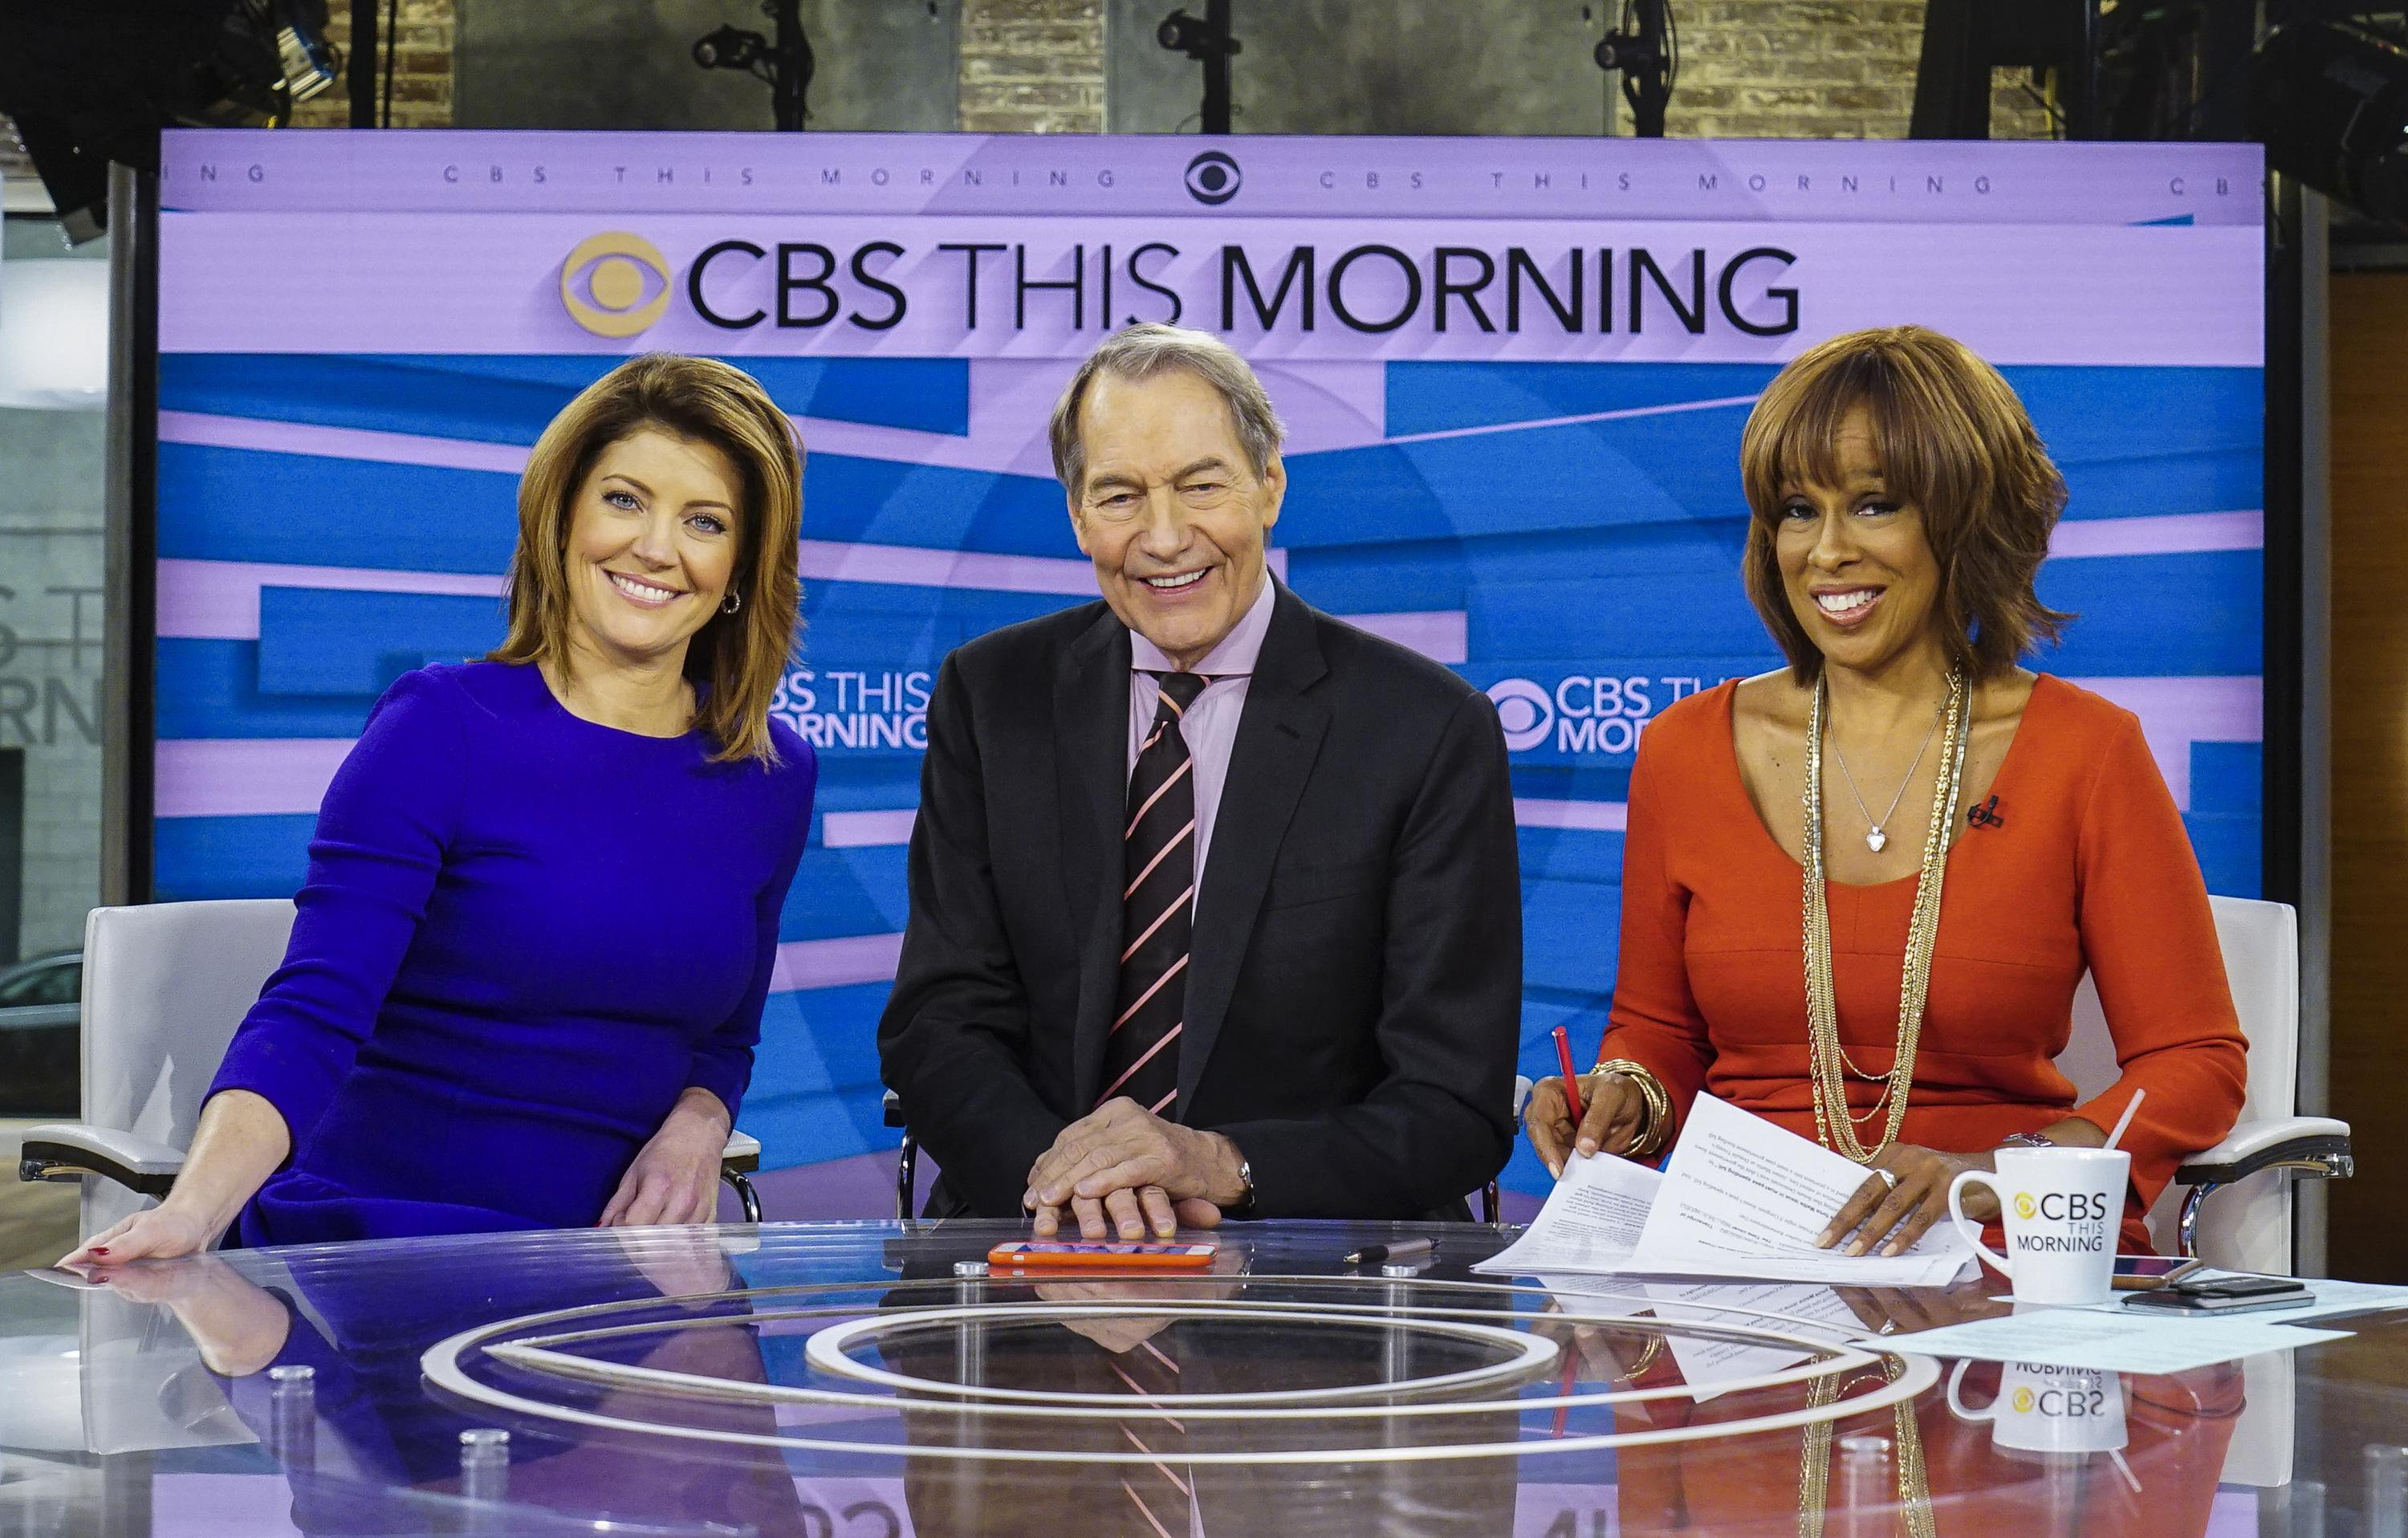 Where is Charlie Rose